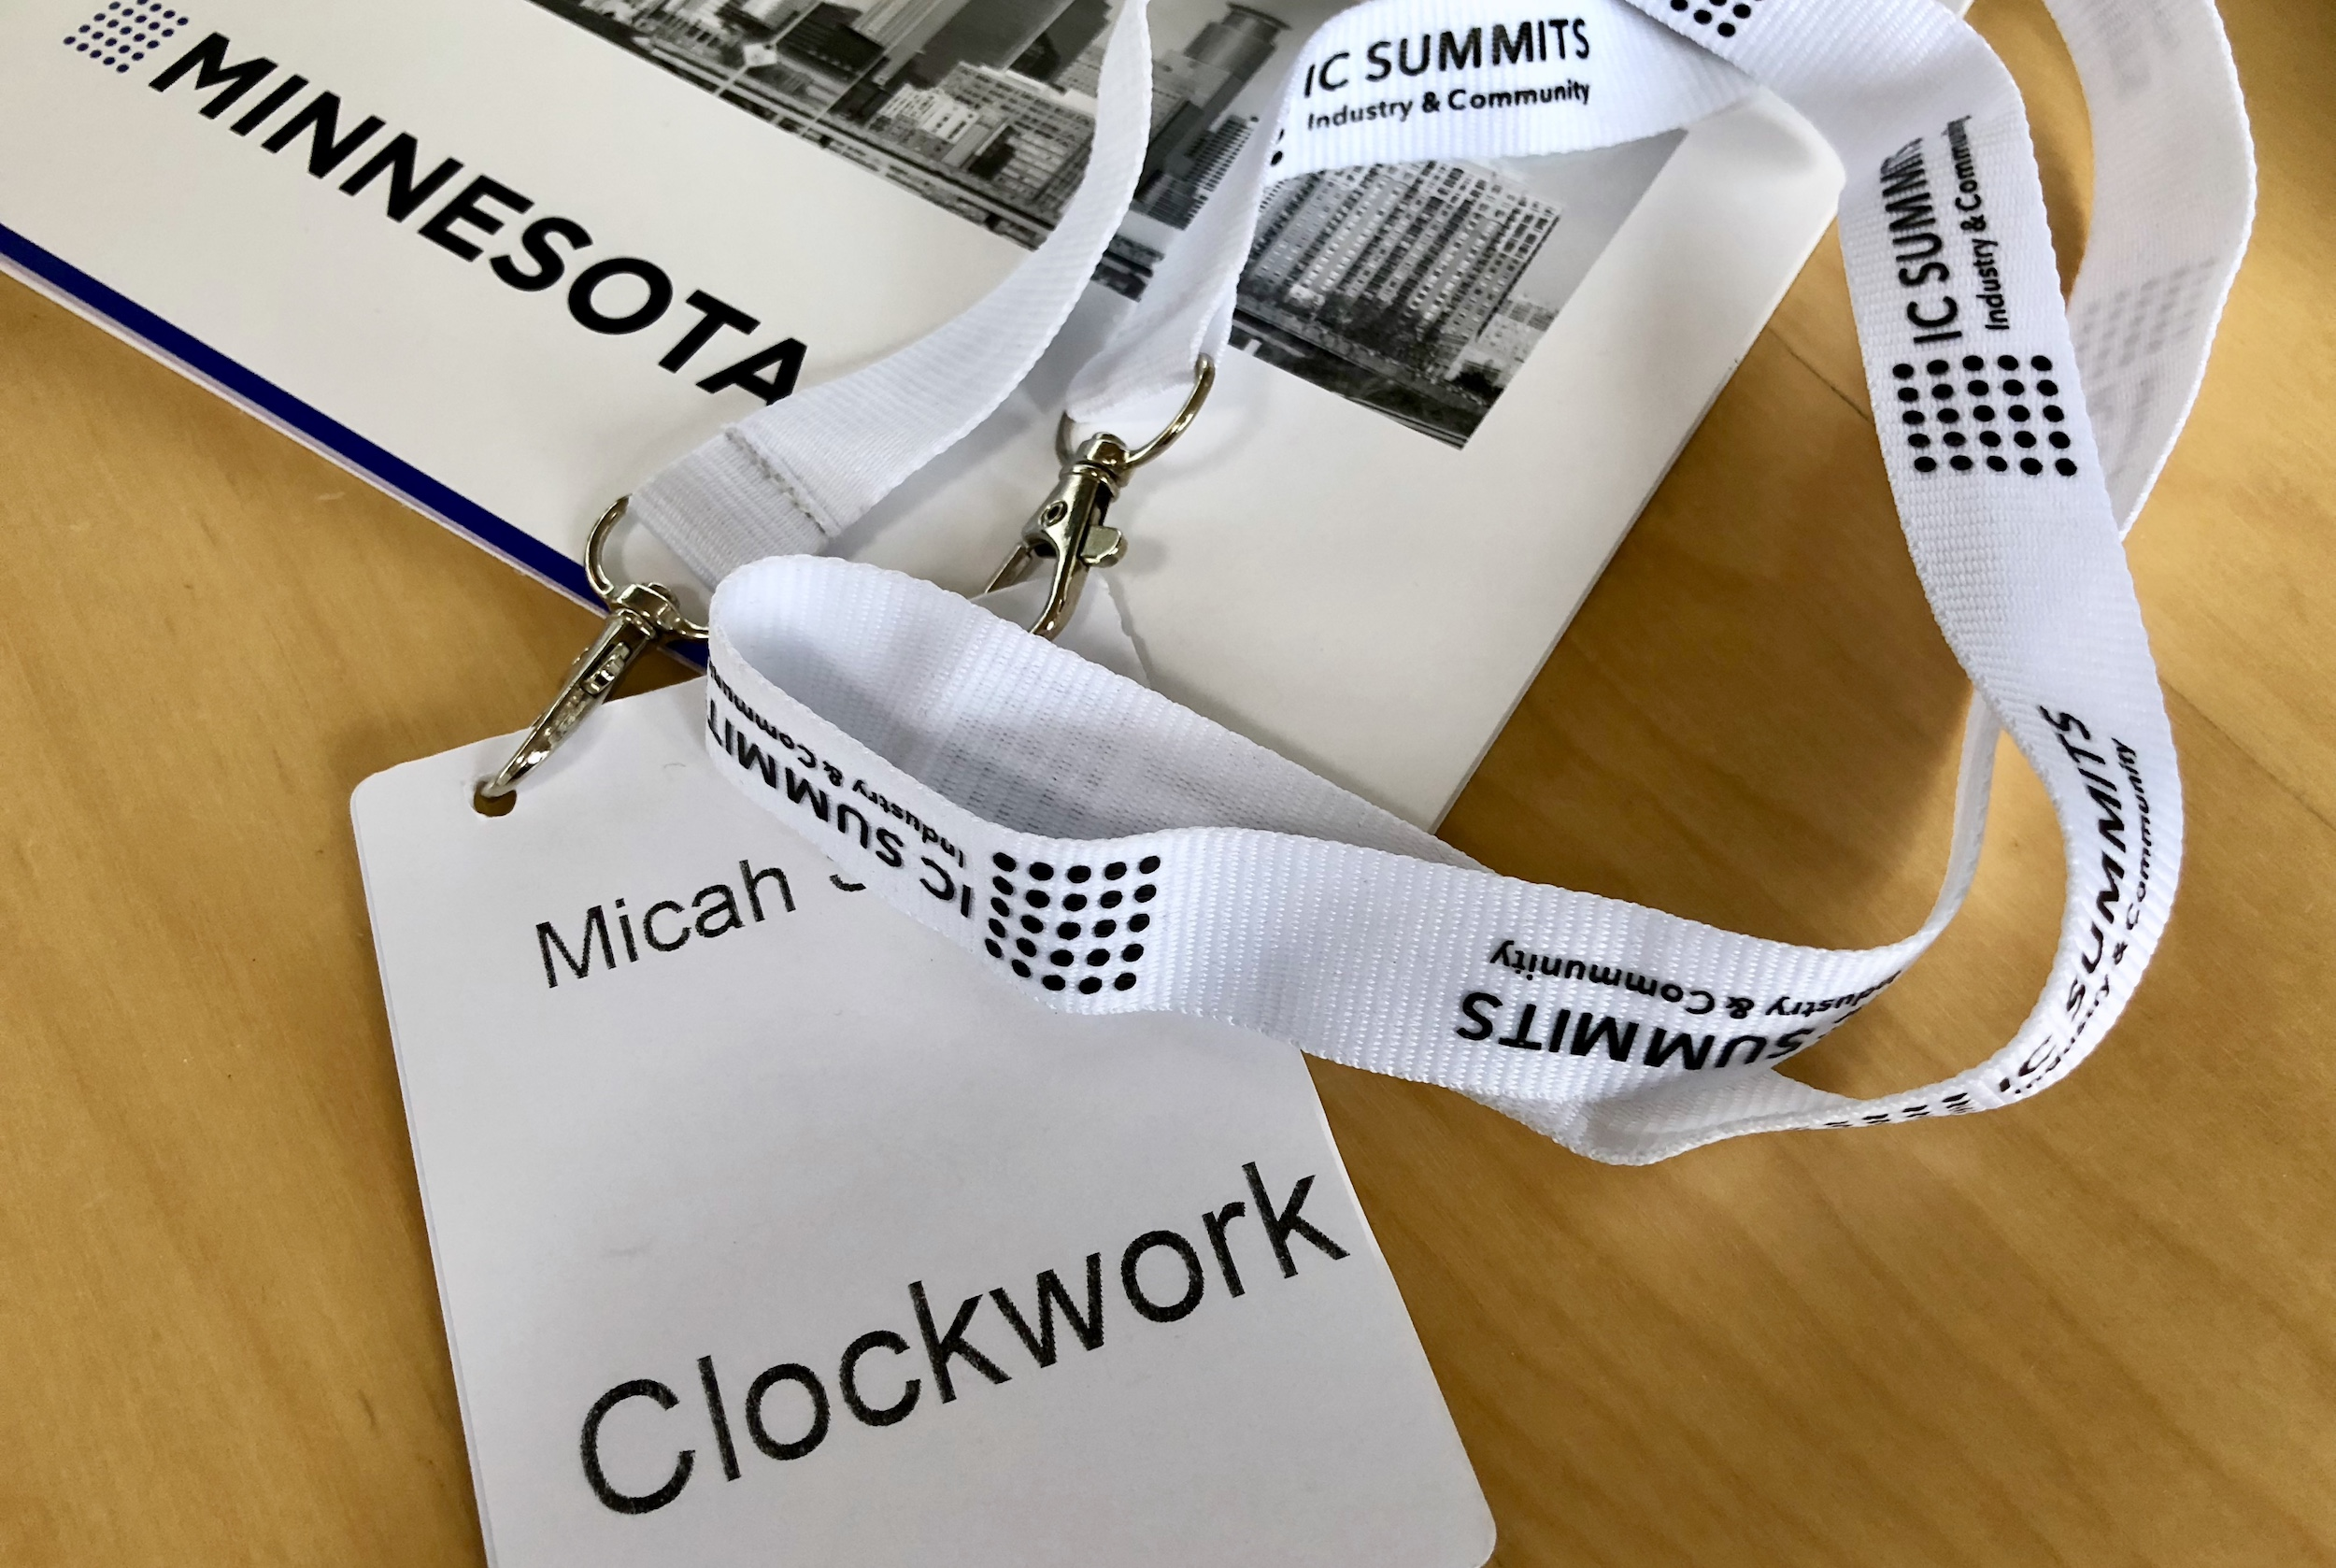 Image for Minnesota Marketing Summit: 3 things I learned